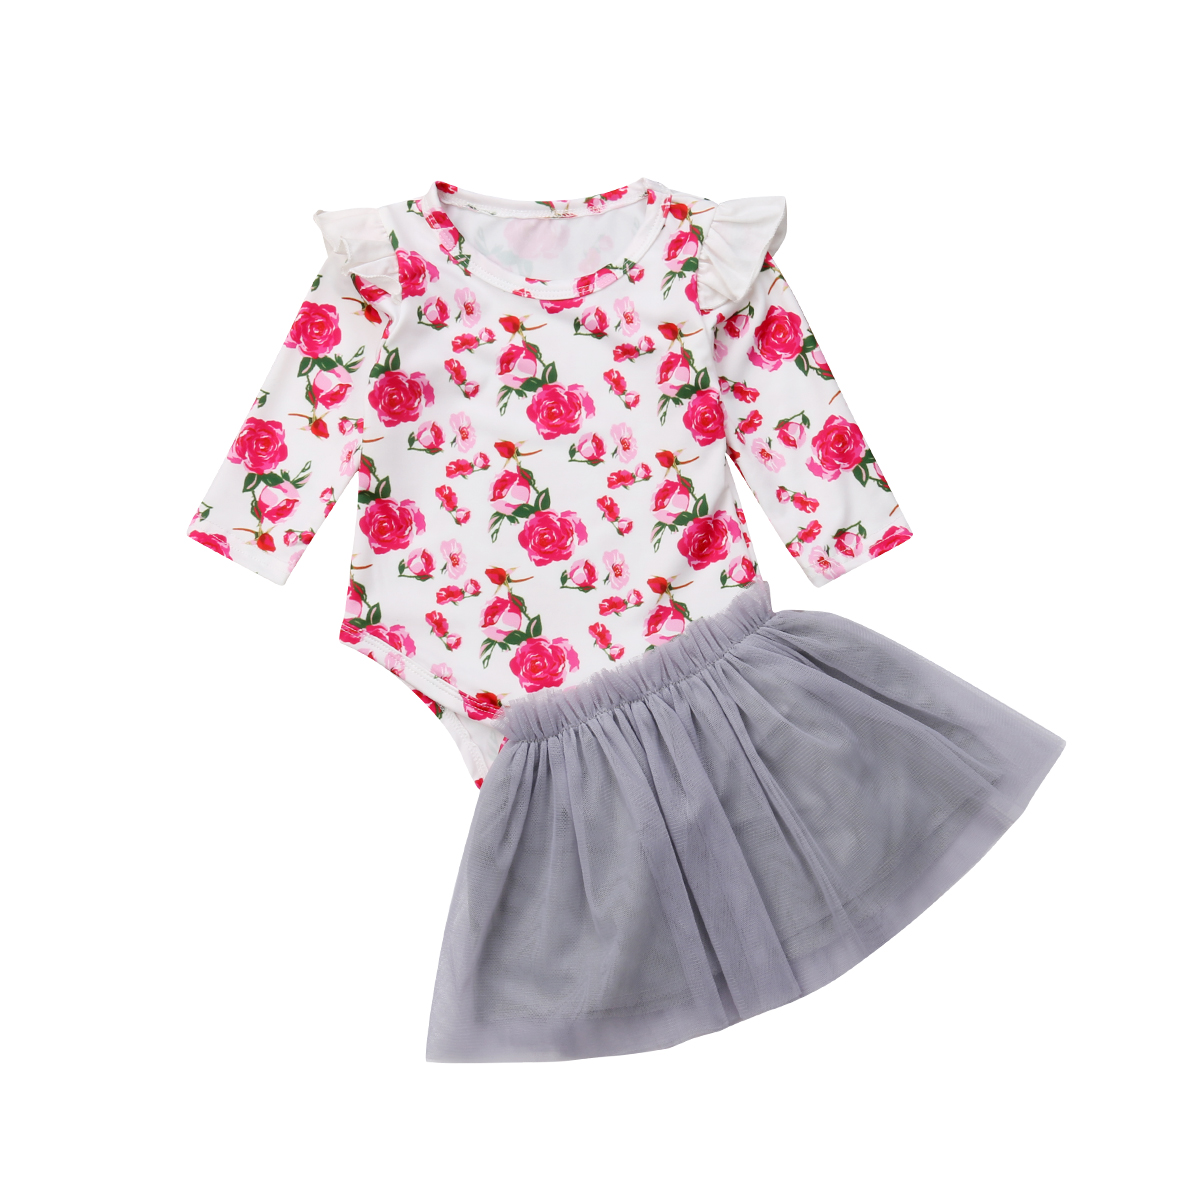 Bodysuits Clothing-Sets Party-Outfit Ruffles Toddler Baby-Girls Infant 2pcs Flower Princess